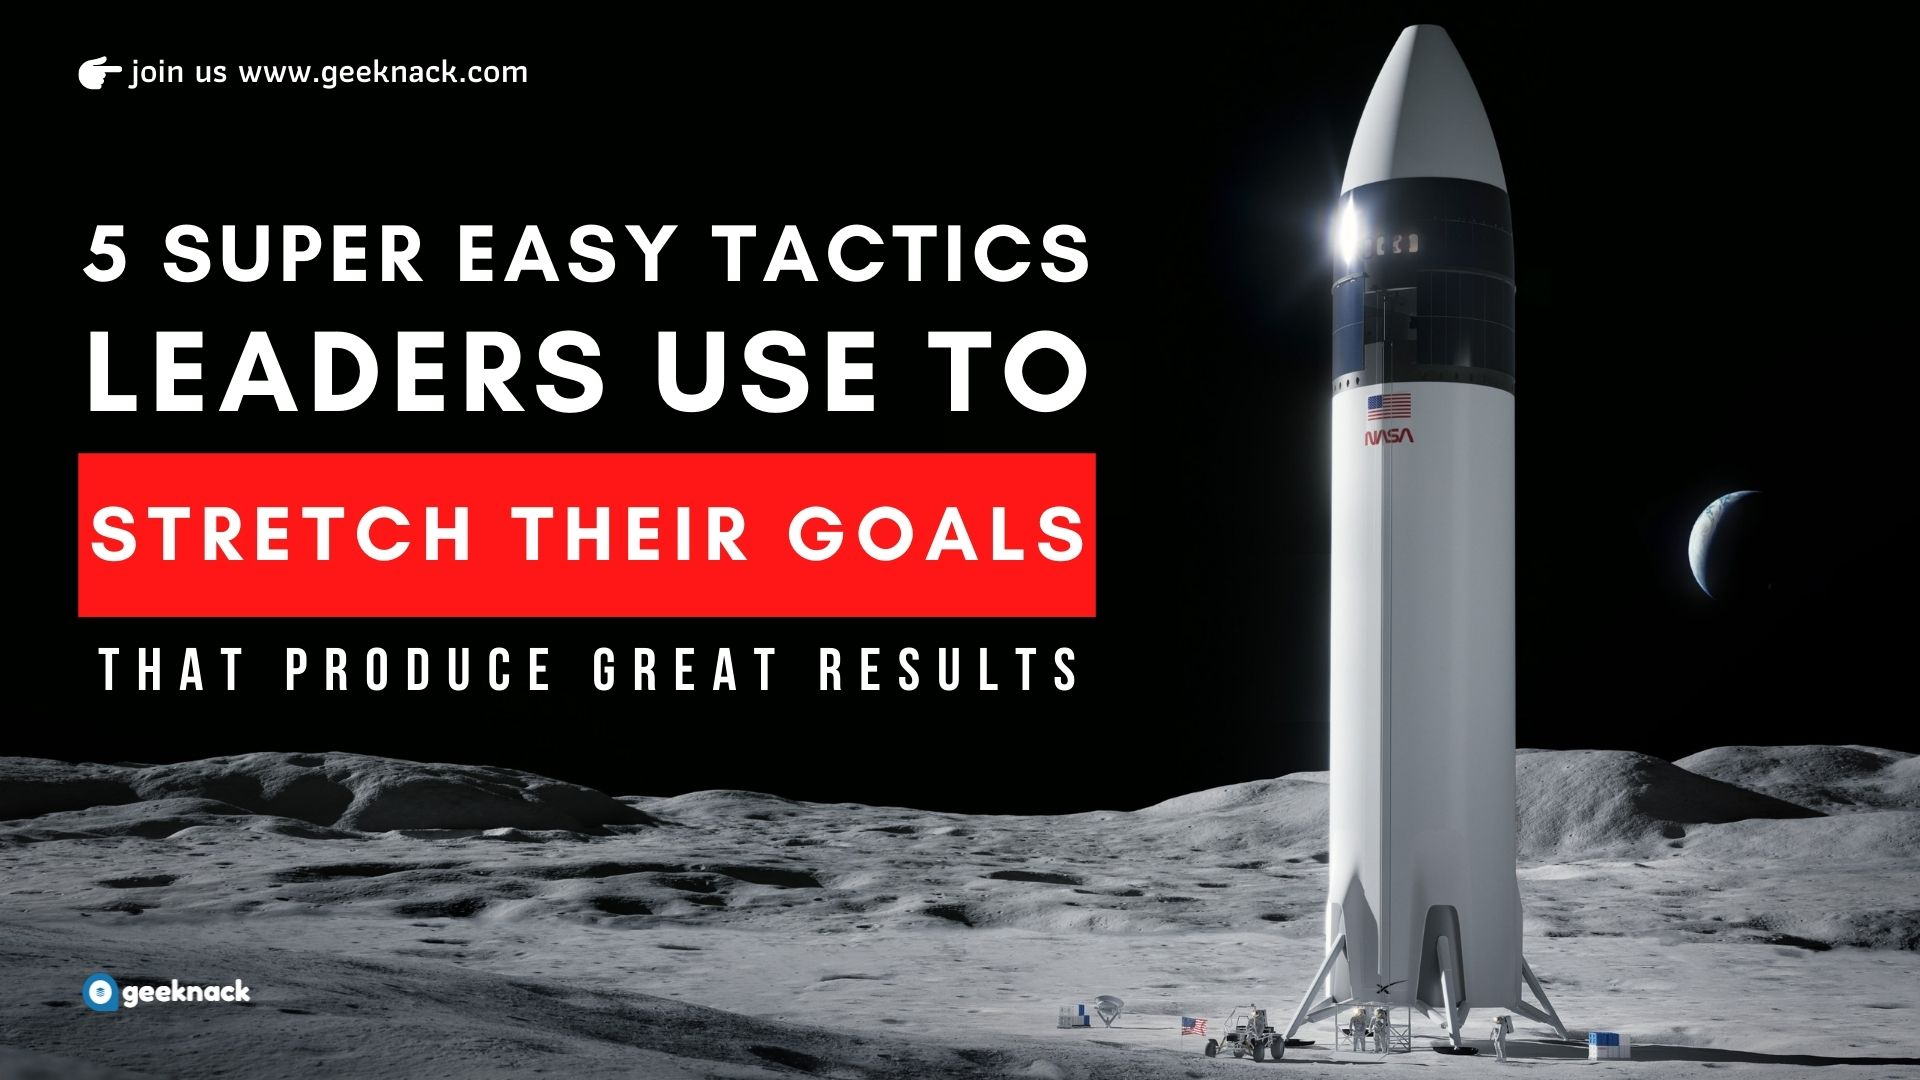 5 Super Easy Ways Leaders Use To Stretch Their Goals That Produce Great Results